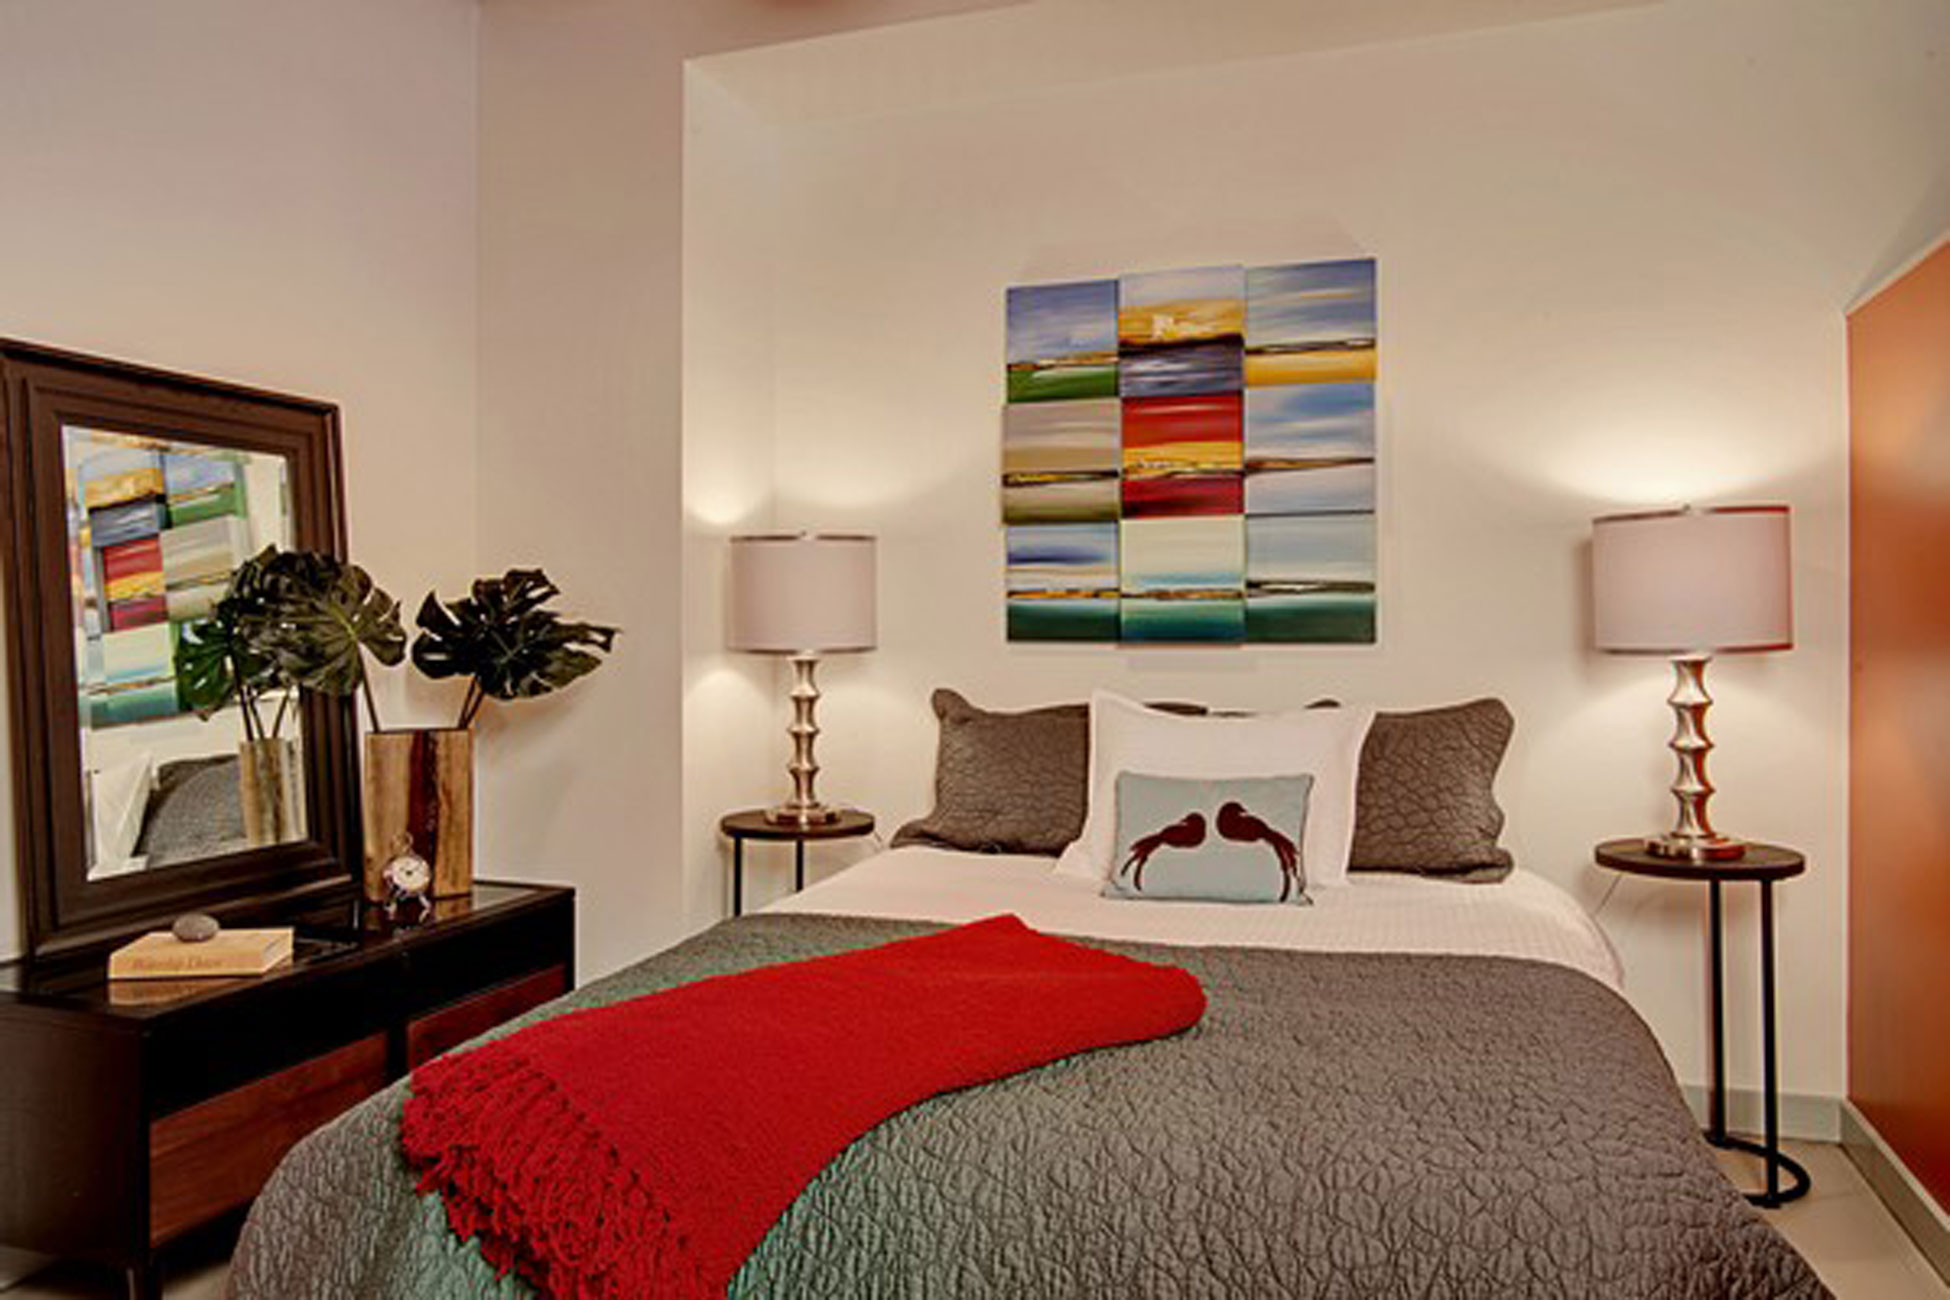 A little apartment bedroom ideas midcityeast for Idea bedroom